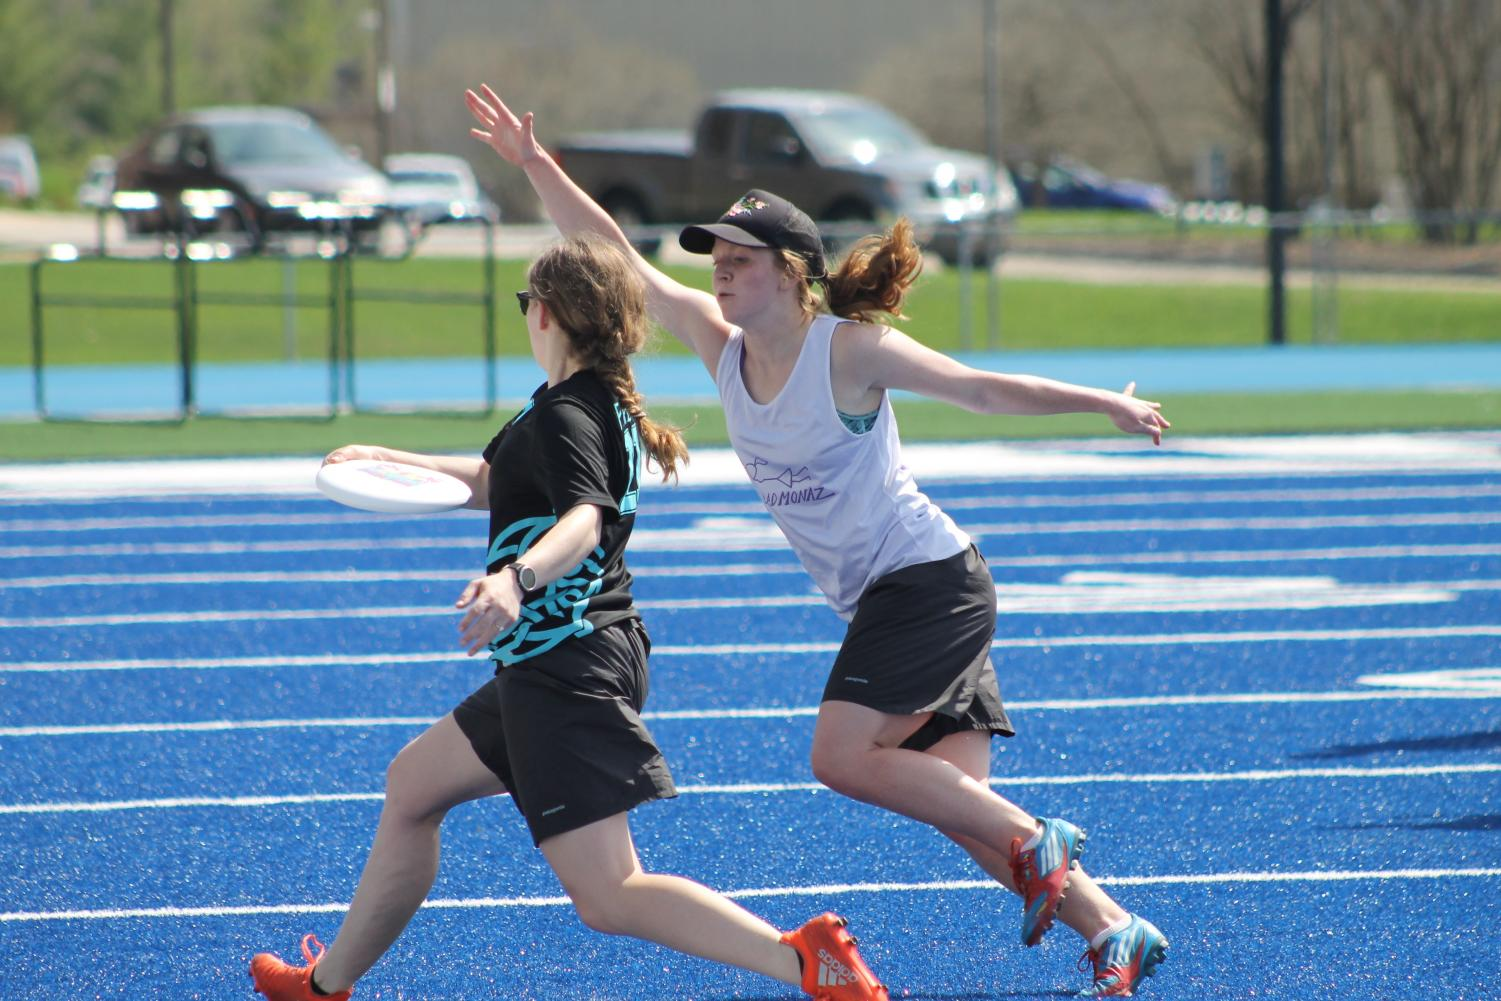 Cora Egherman ('19) attemps to throw a frisbee as Alexis Hove ('18) defends.